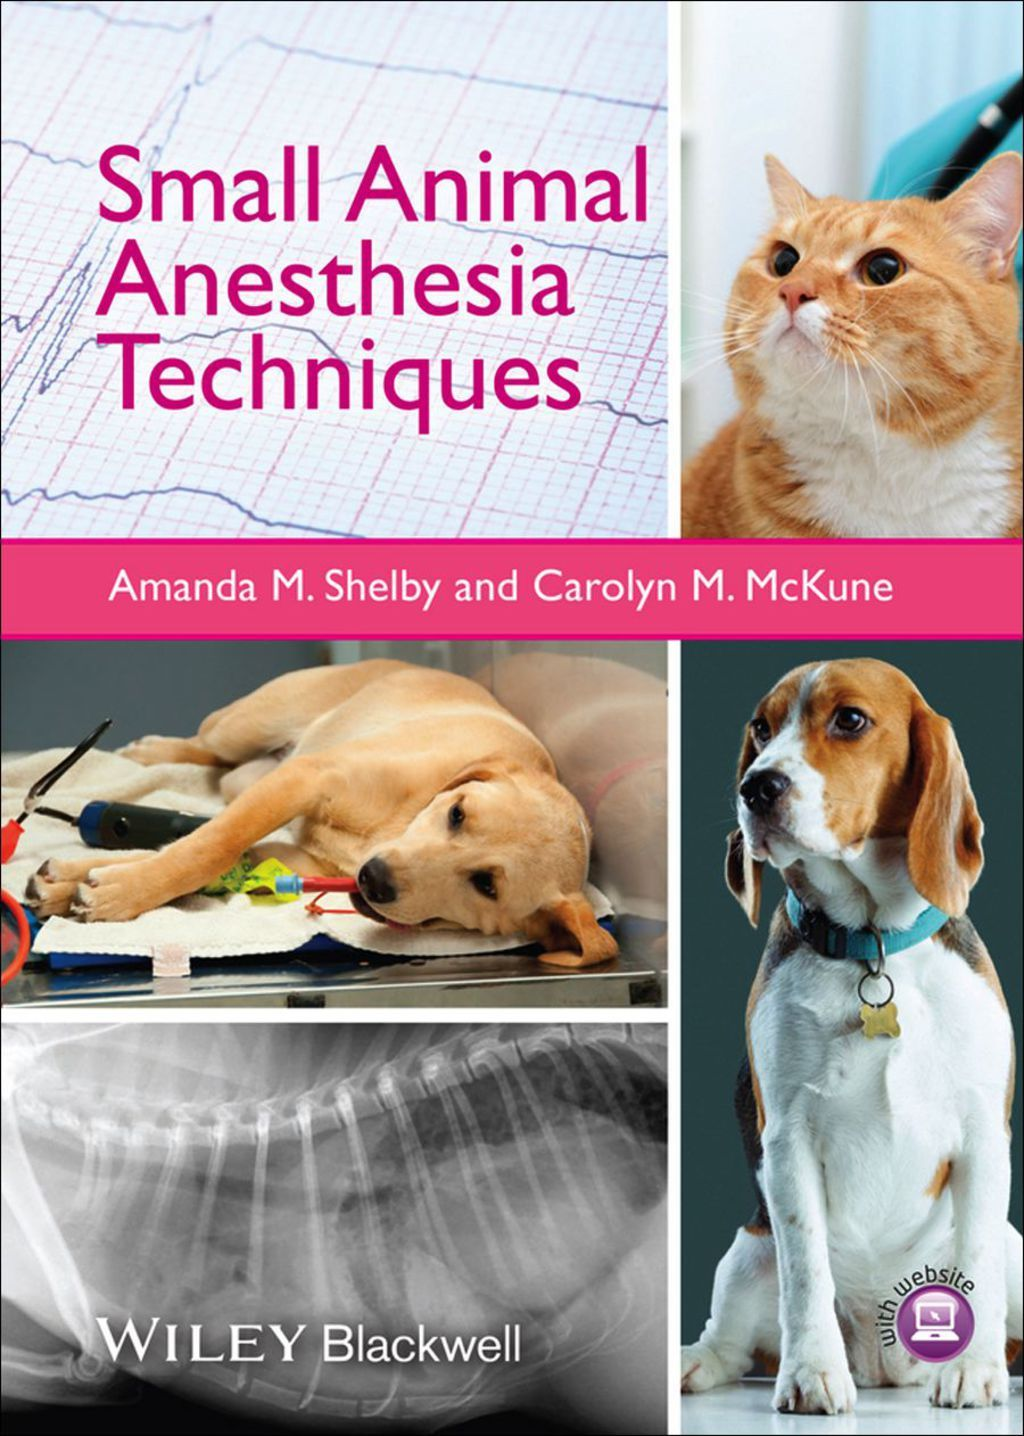 Small Animal Anesthesia Techniques (eBook)